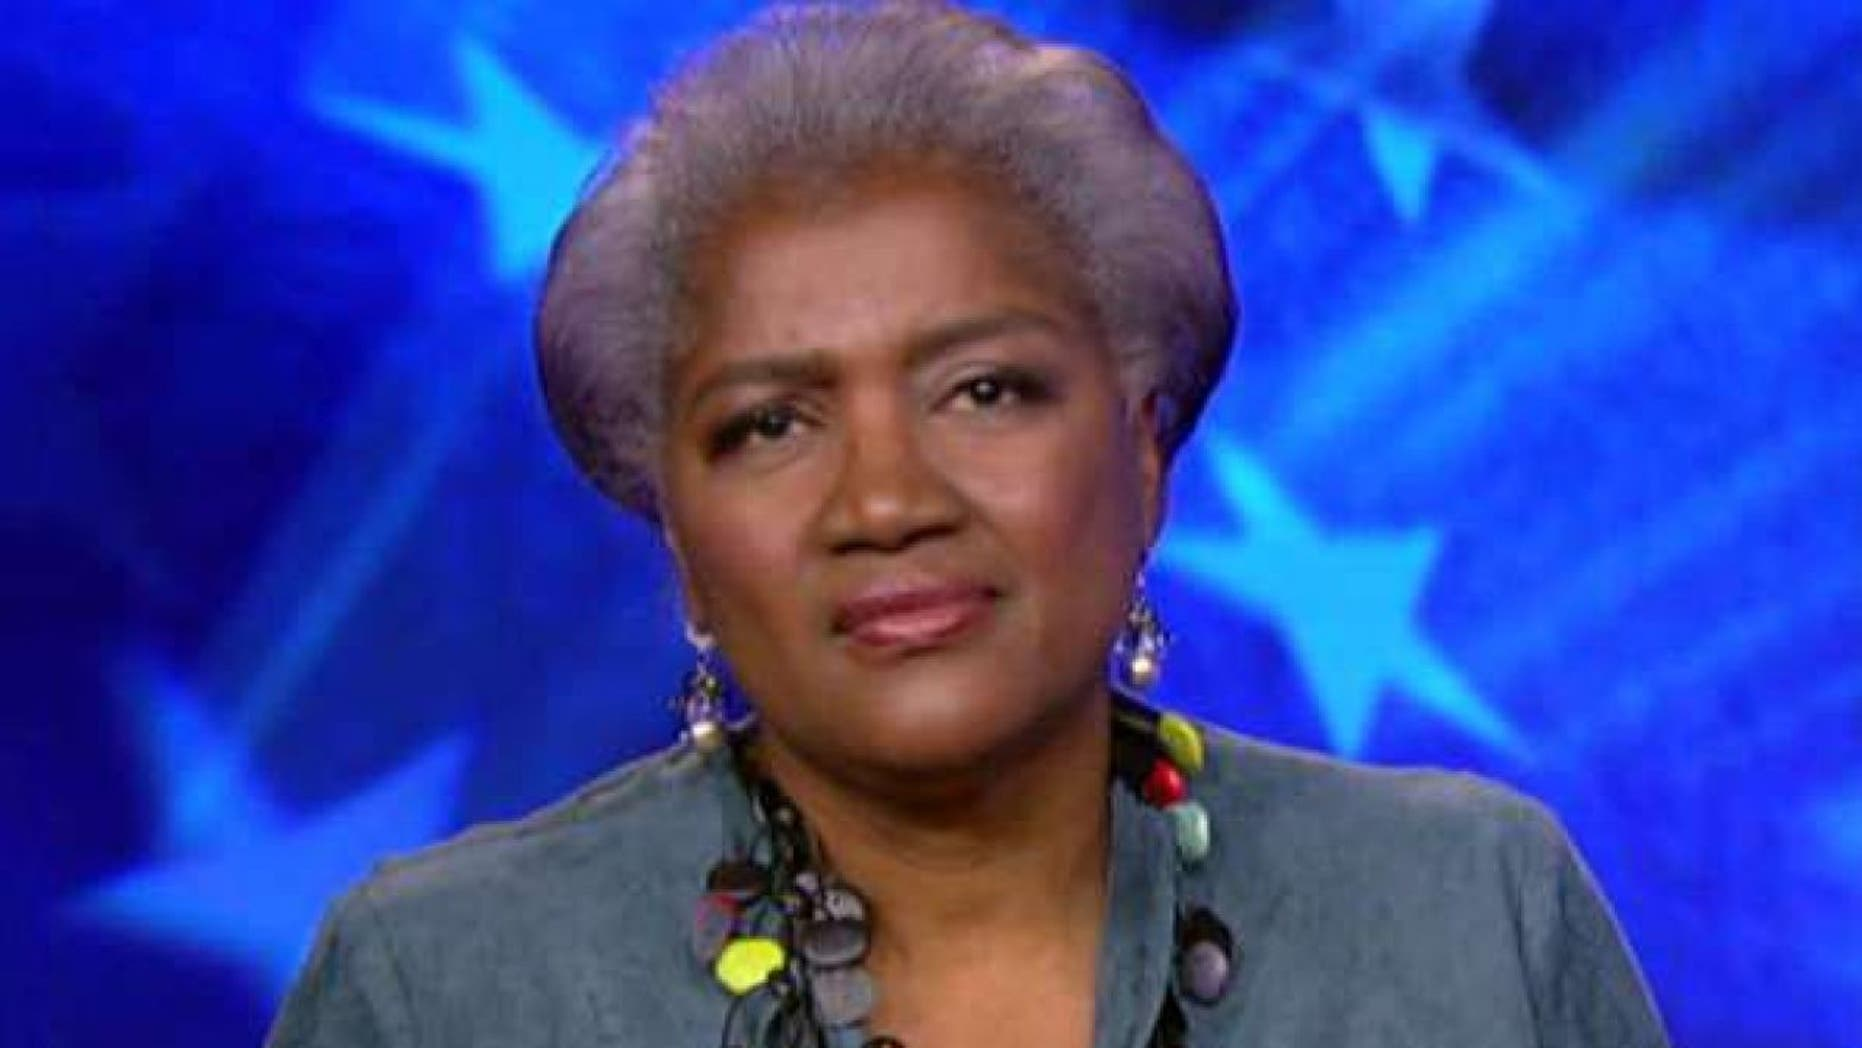 In 2020, Democrats could regain the purple states of Michigan, Pennsylvania, and Wisconsin after losing them to then-candidate Donald Trump in 2016, according to Fox News contributor Donna Brazile.